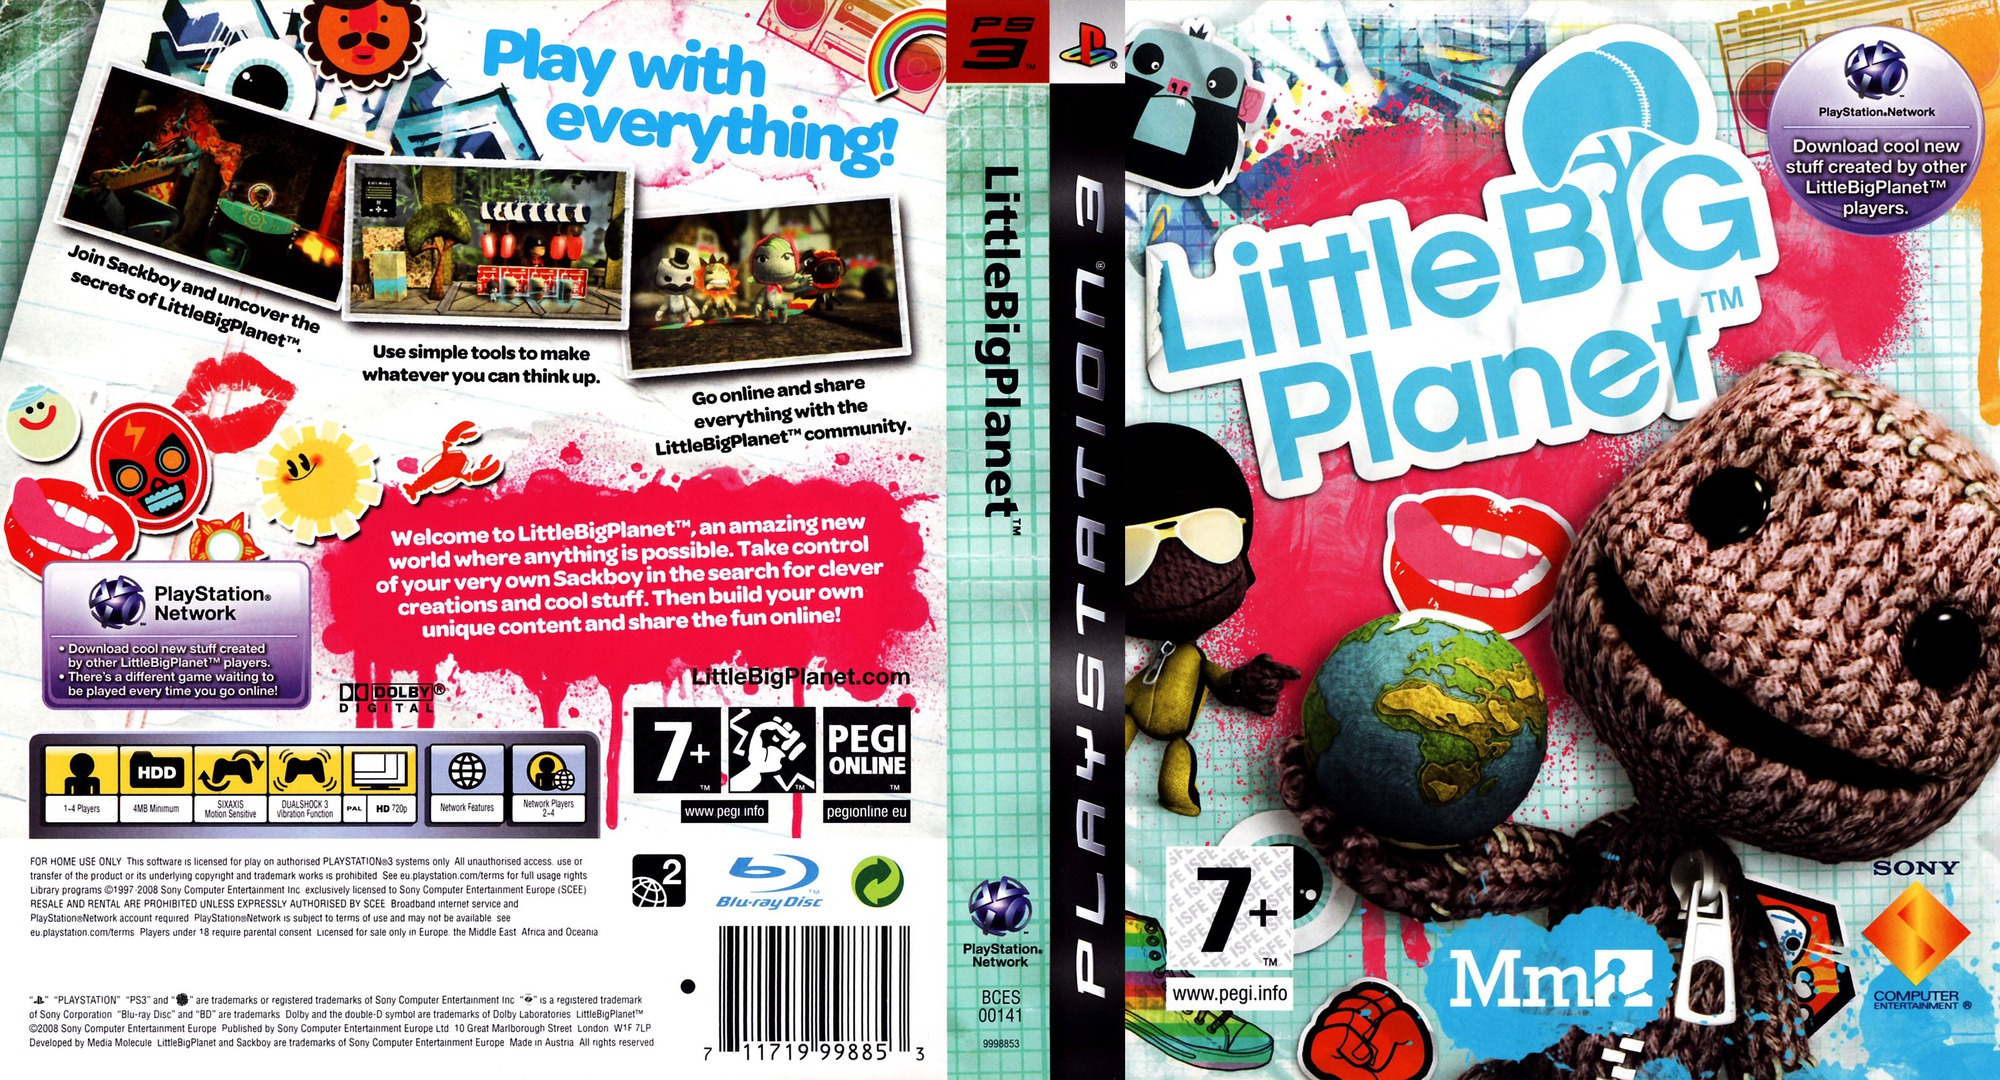 LittleBigPlanet PS3 coverfullHQ (BCES00141)